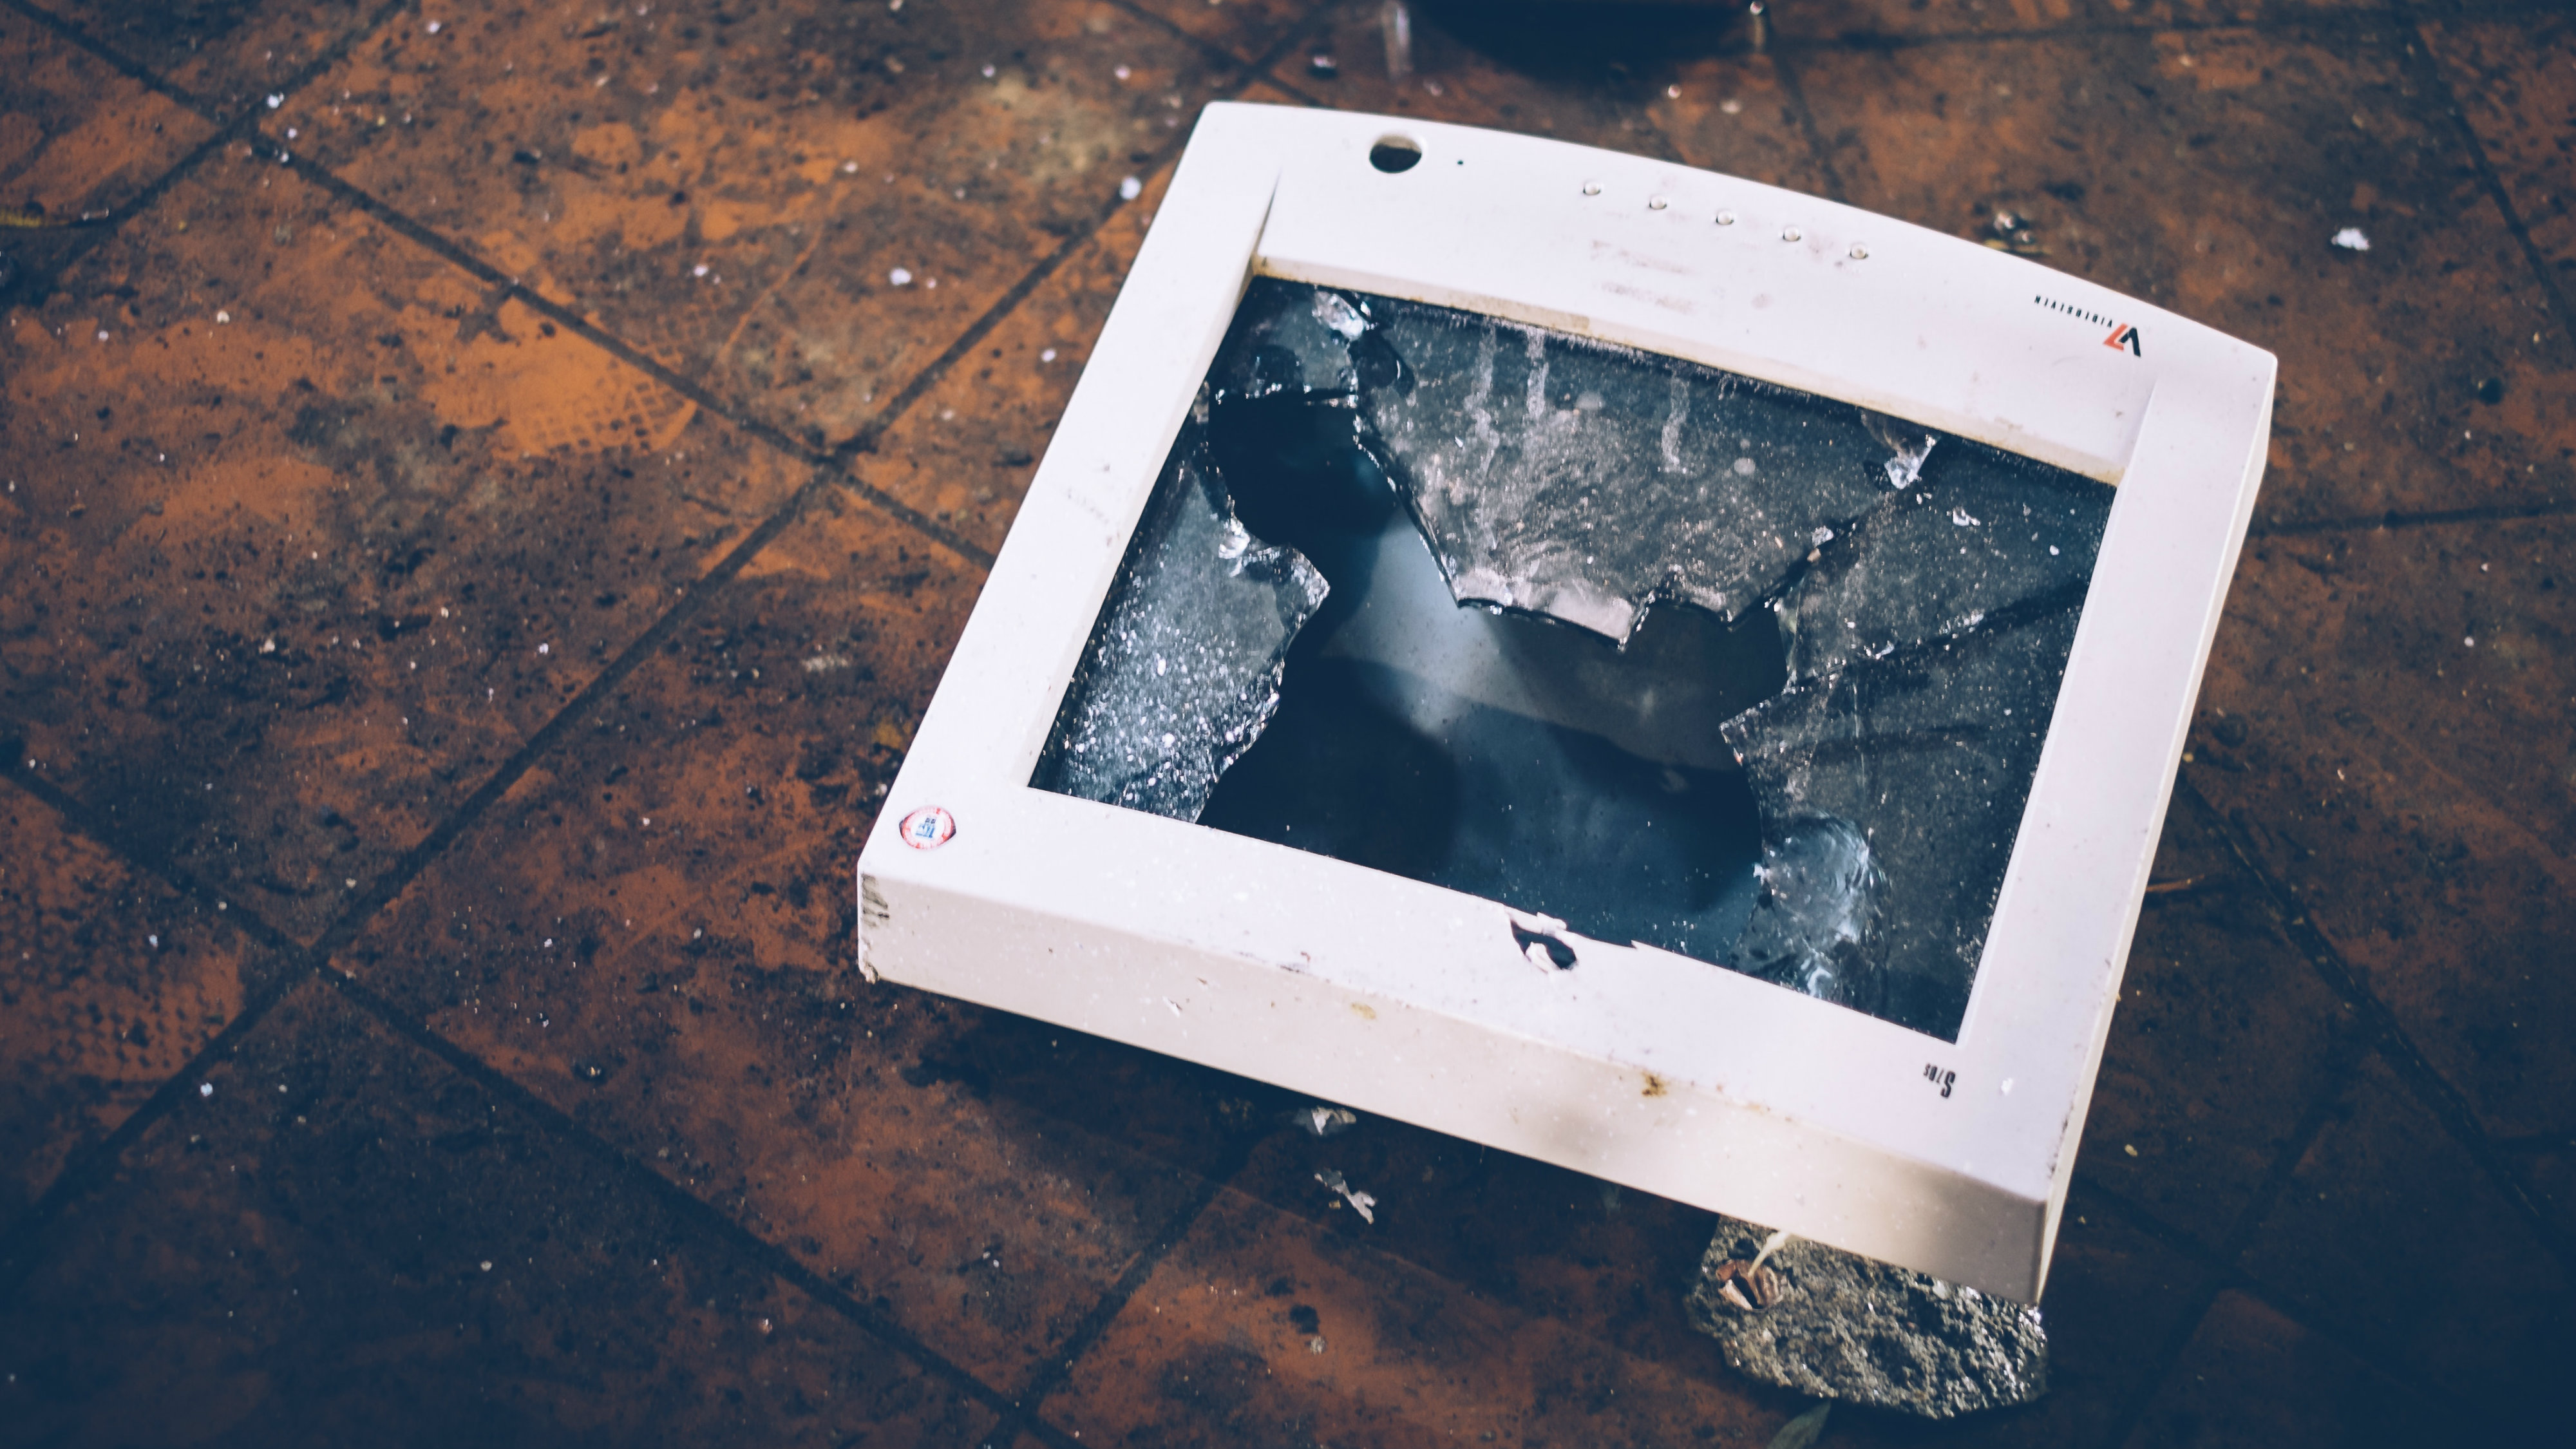 smashed computer